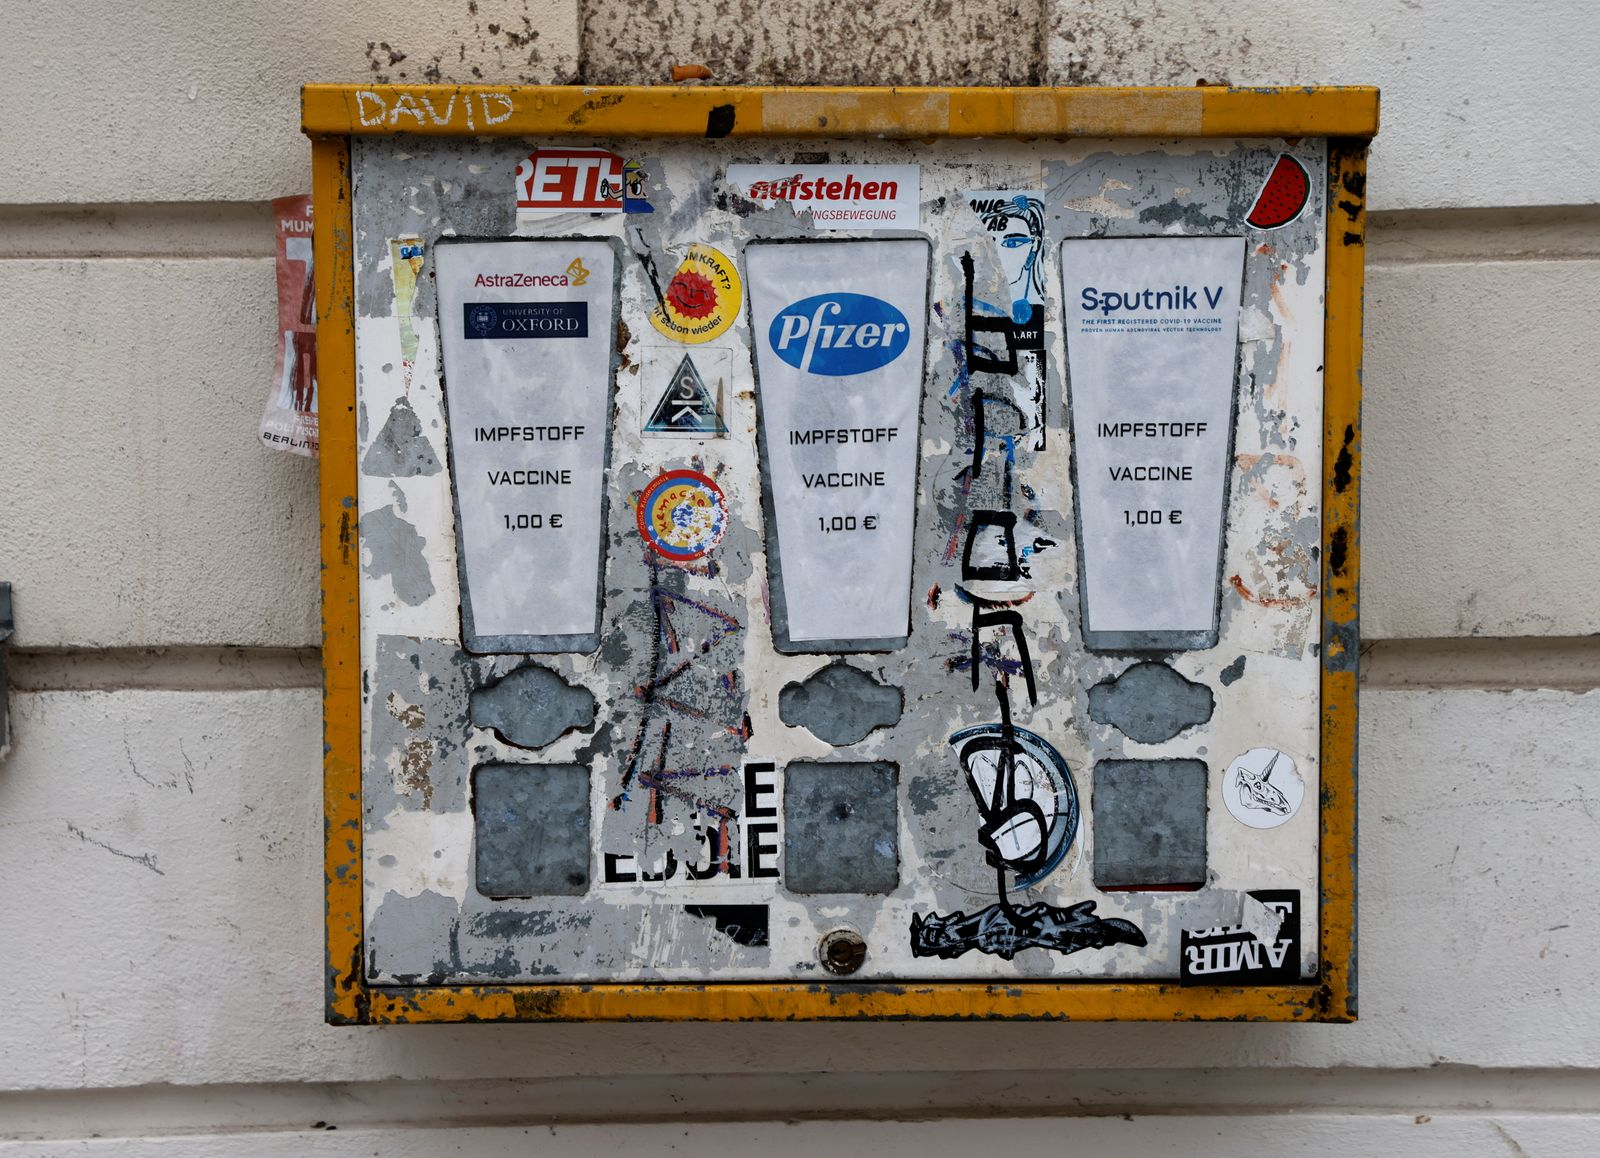 A former chewing gum vending machine pasted with coronavirus vaccine logos during lockdown in Berlin